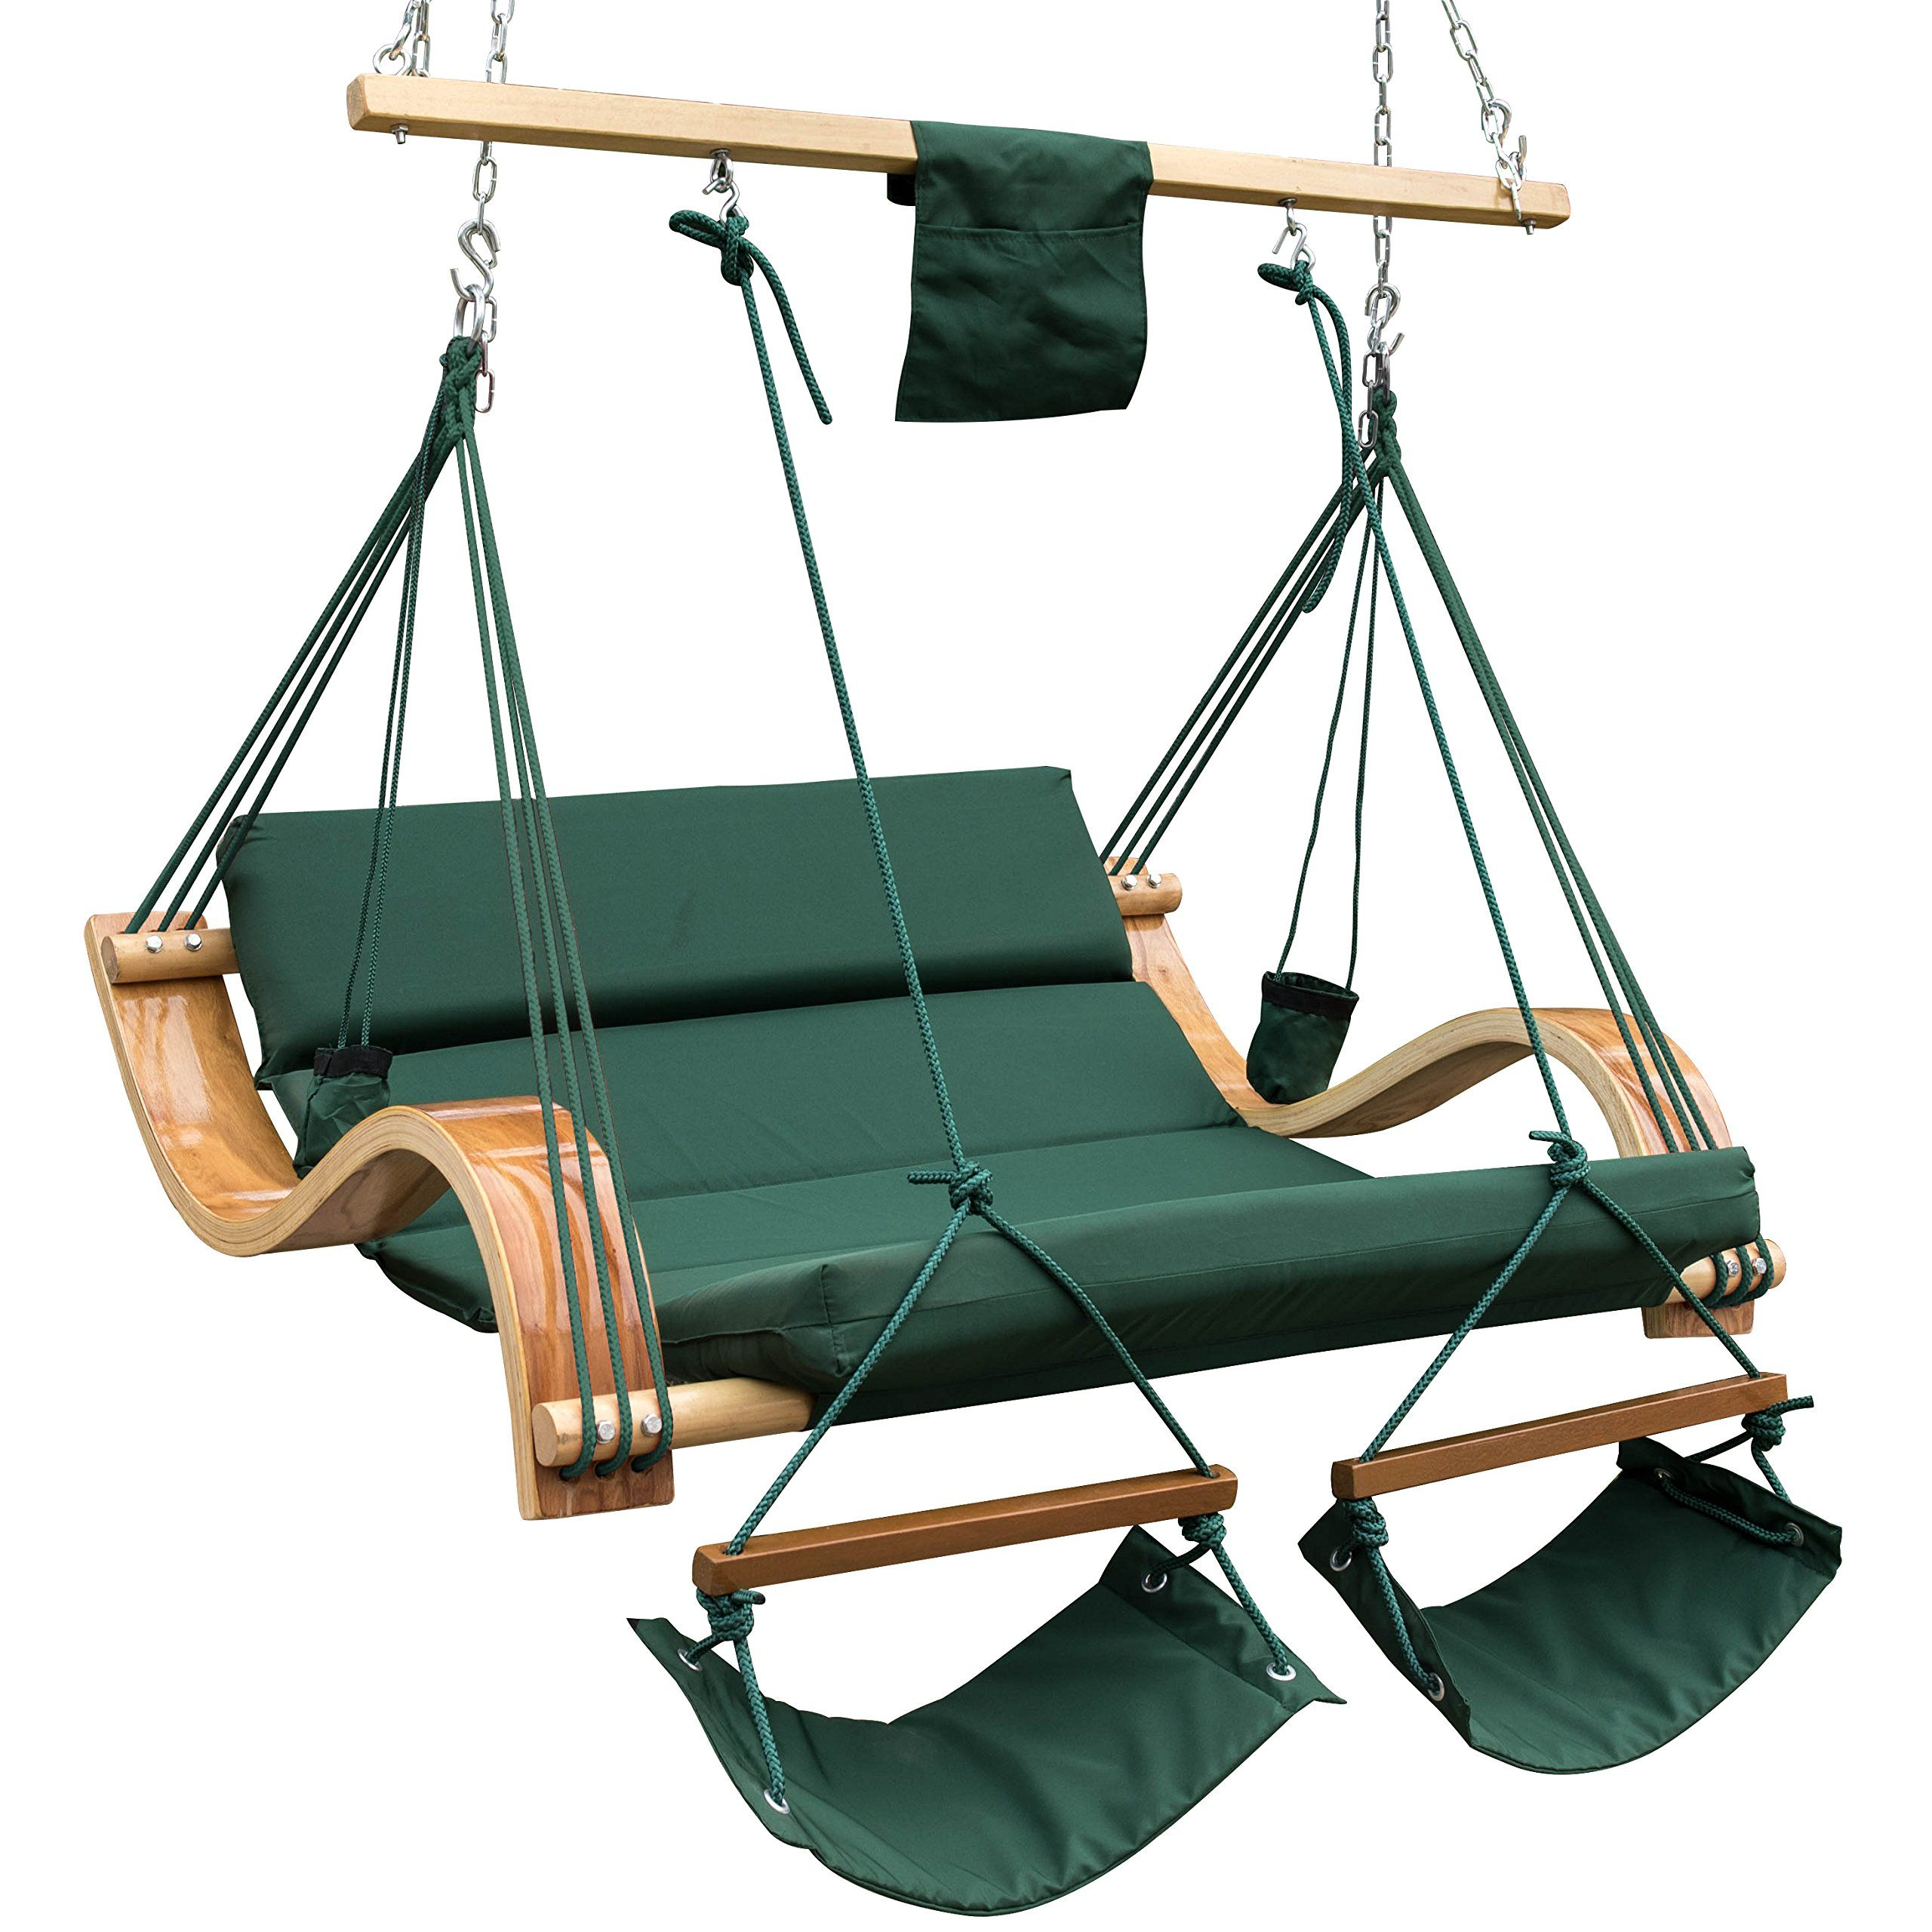 swing chairs pin double hammocks chair hammock quality colour and lazyrezt hanging xl